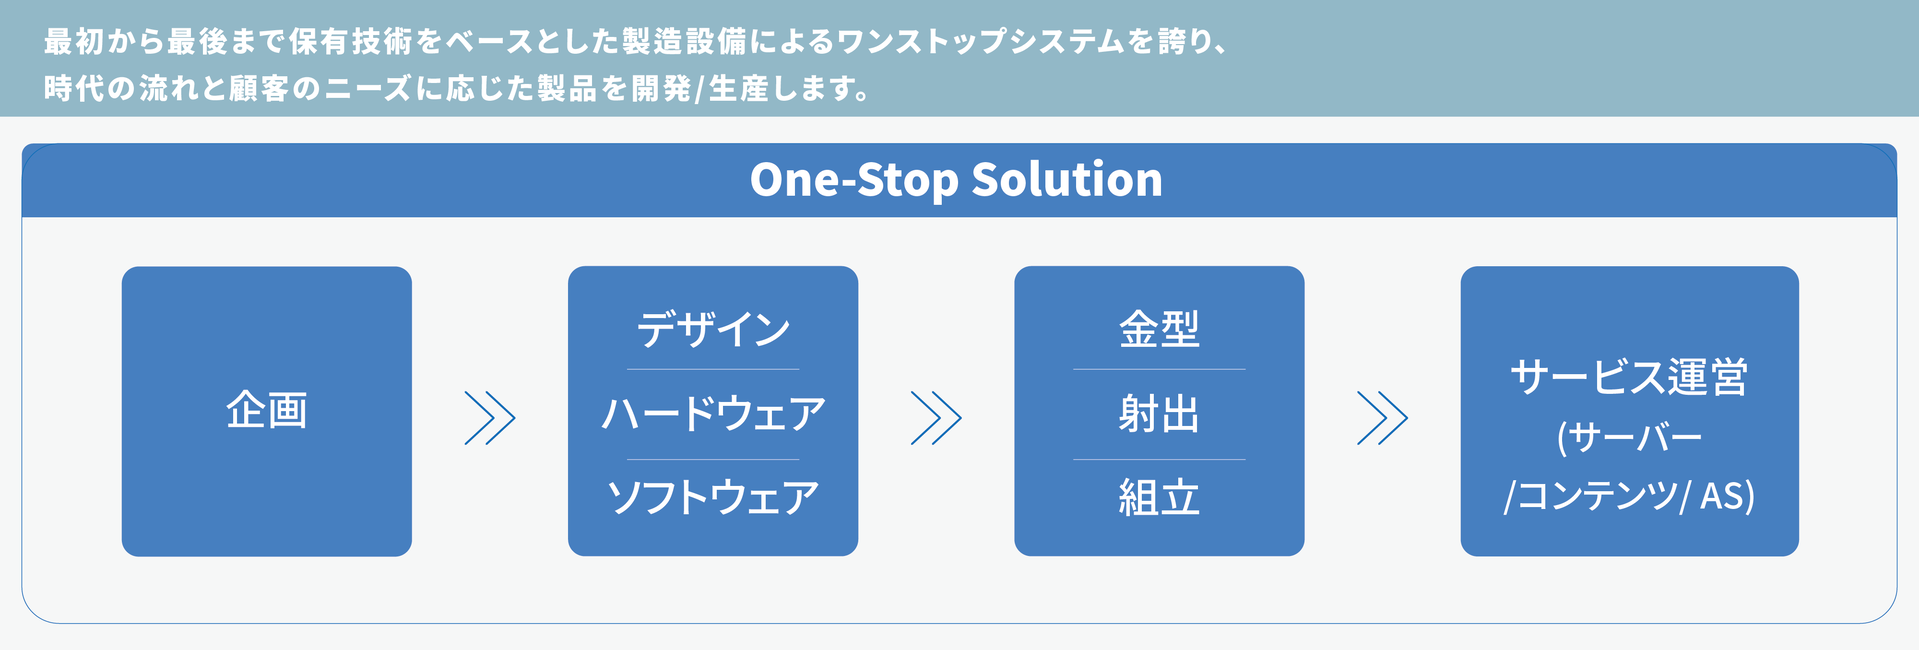 ONE-STOP SOULTION